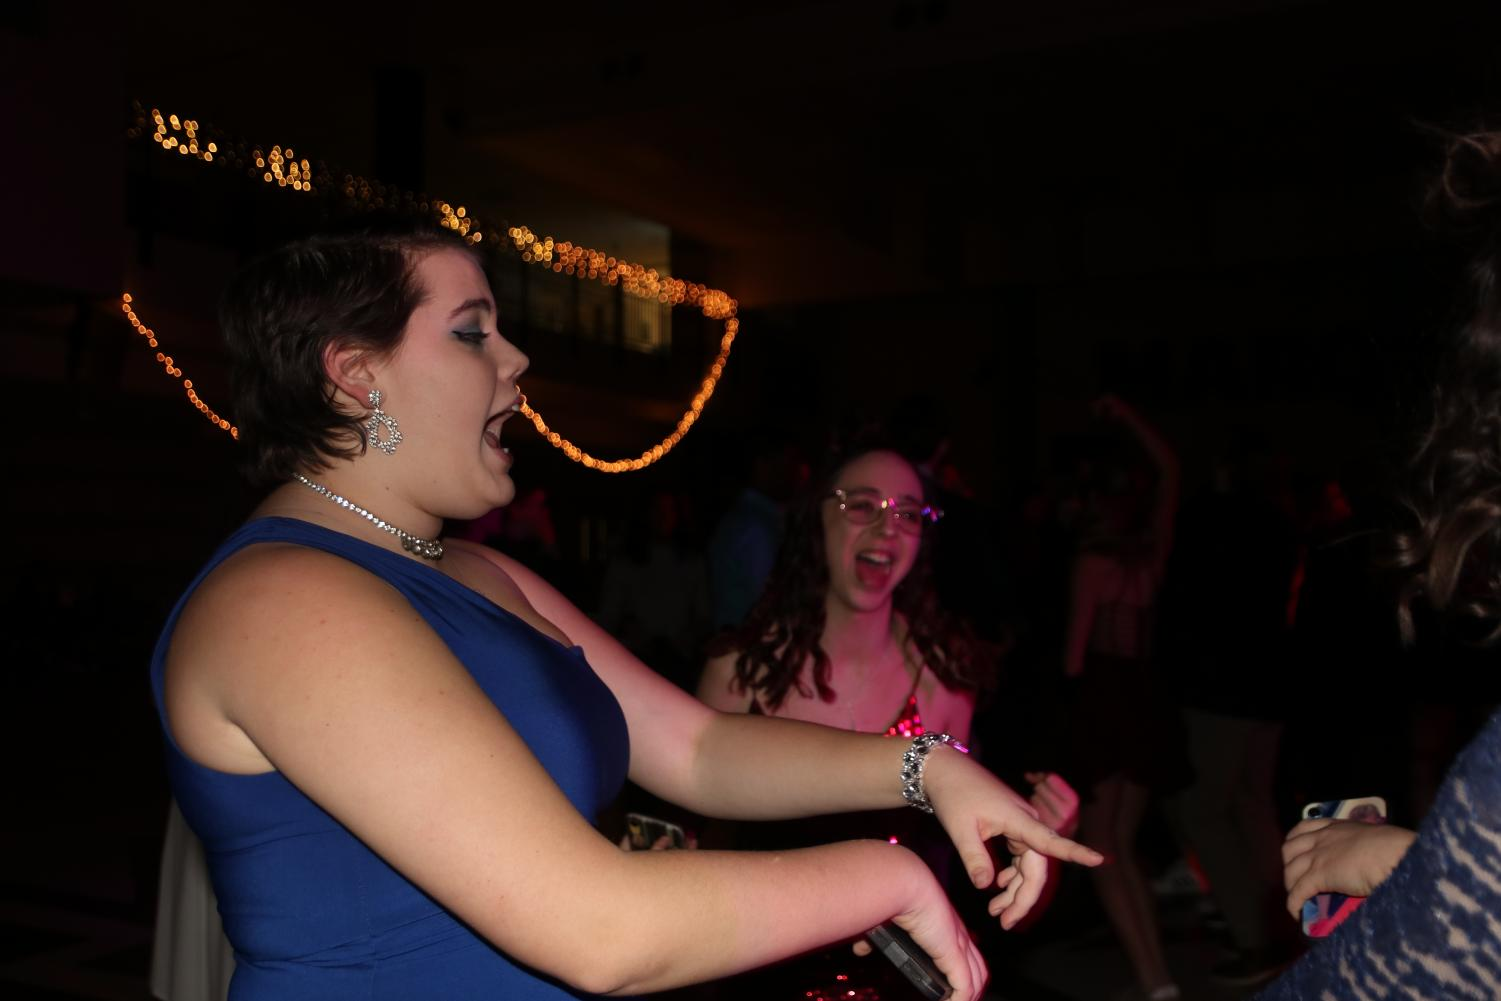 Surrounded+by+her+friends%2C+Carrie+Lunte%2C+sophomore%2C+dances+to+%E2%80%9CMagic%E2%80%9D+by+B.o.B.+Lunte+attended+the+dance+last+year+as+well.+%E2%80%9CI+kind+of+wish+there+were+more+people%2C+but+it%E2%80%99s+pretty+good+to+hang+out+with+friends%2C%E2%80%9D+Lunte+said.+